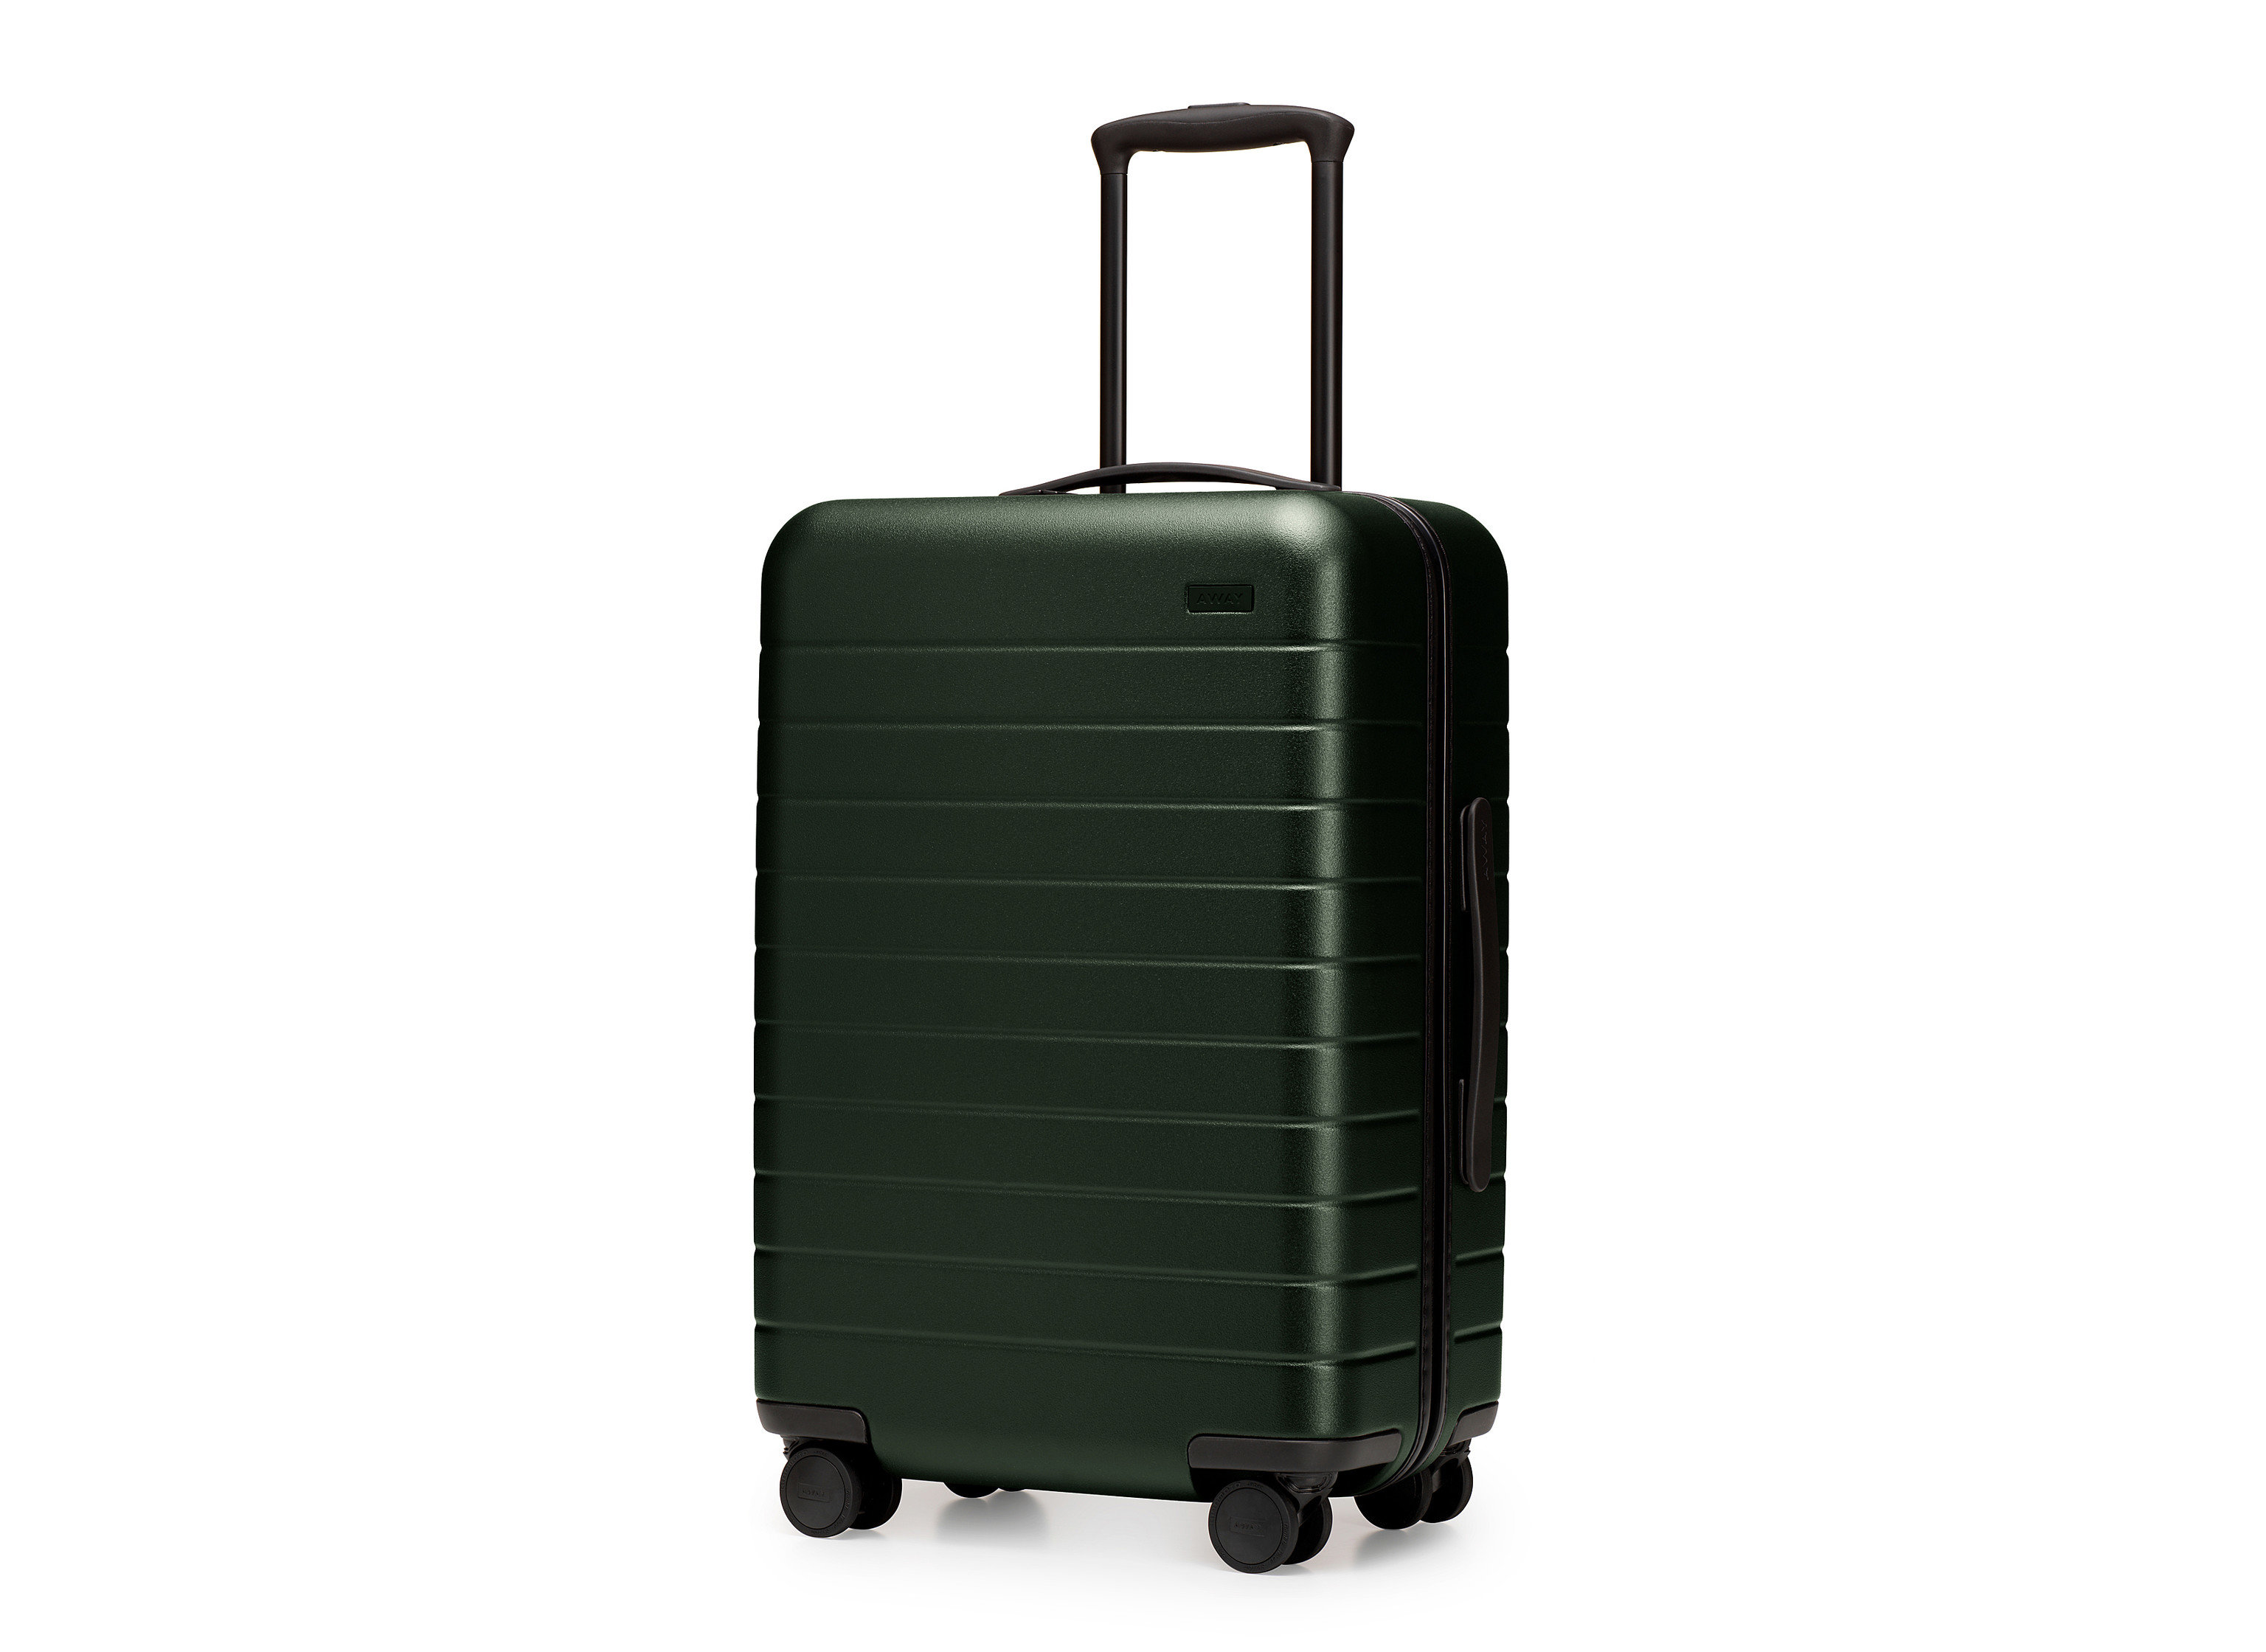 Style + Design suitcase product product design hand luggage luggage & bags baggage